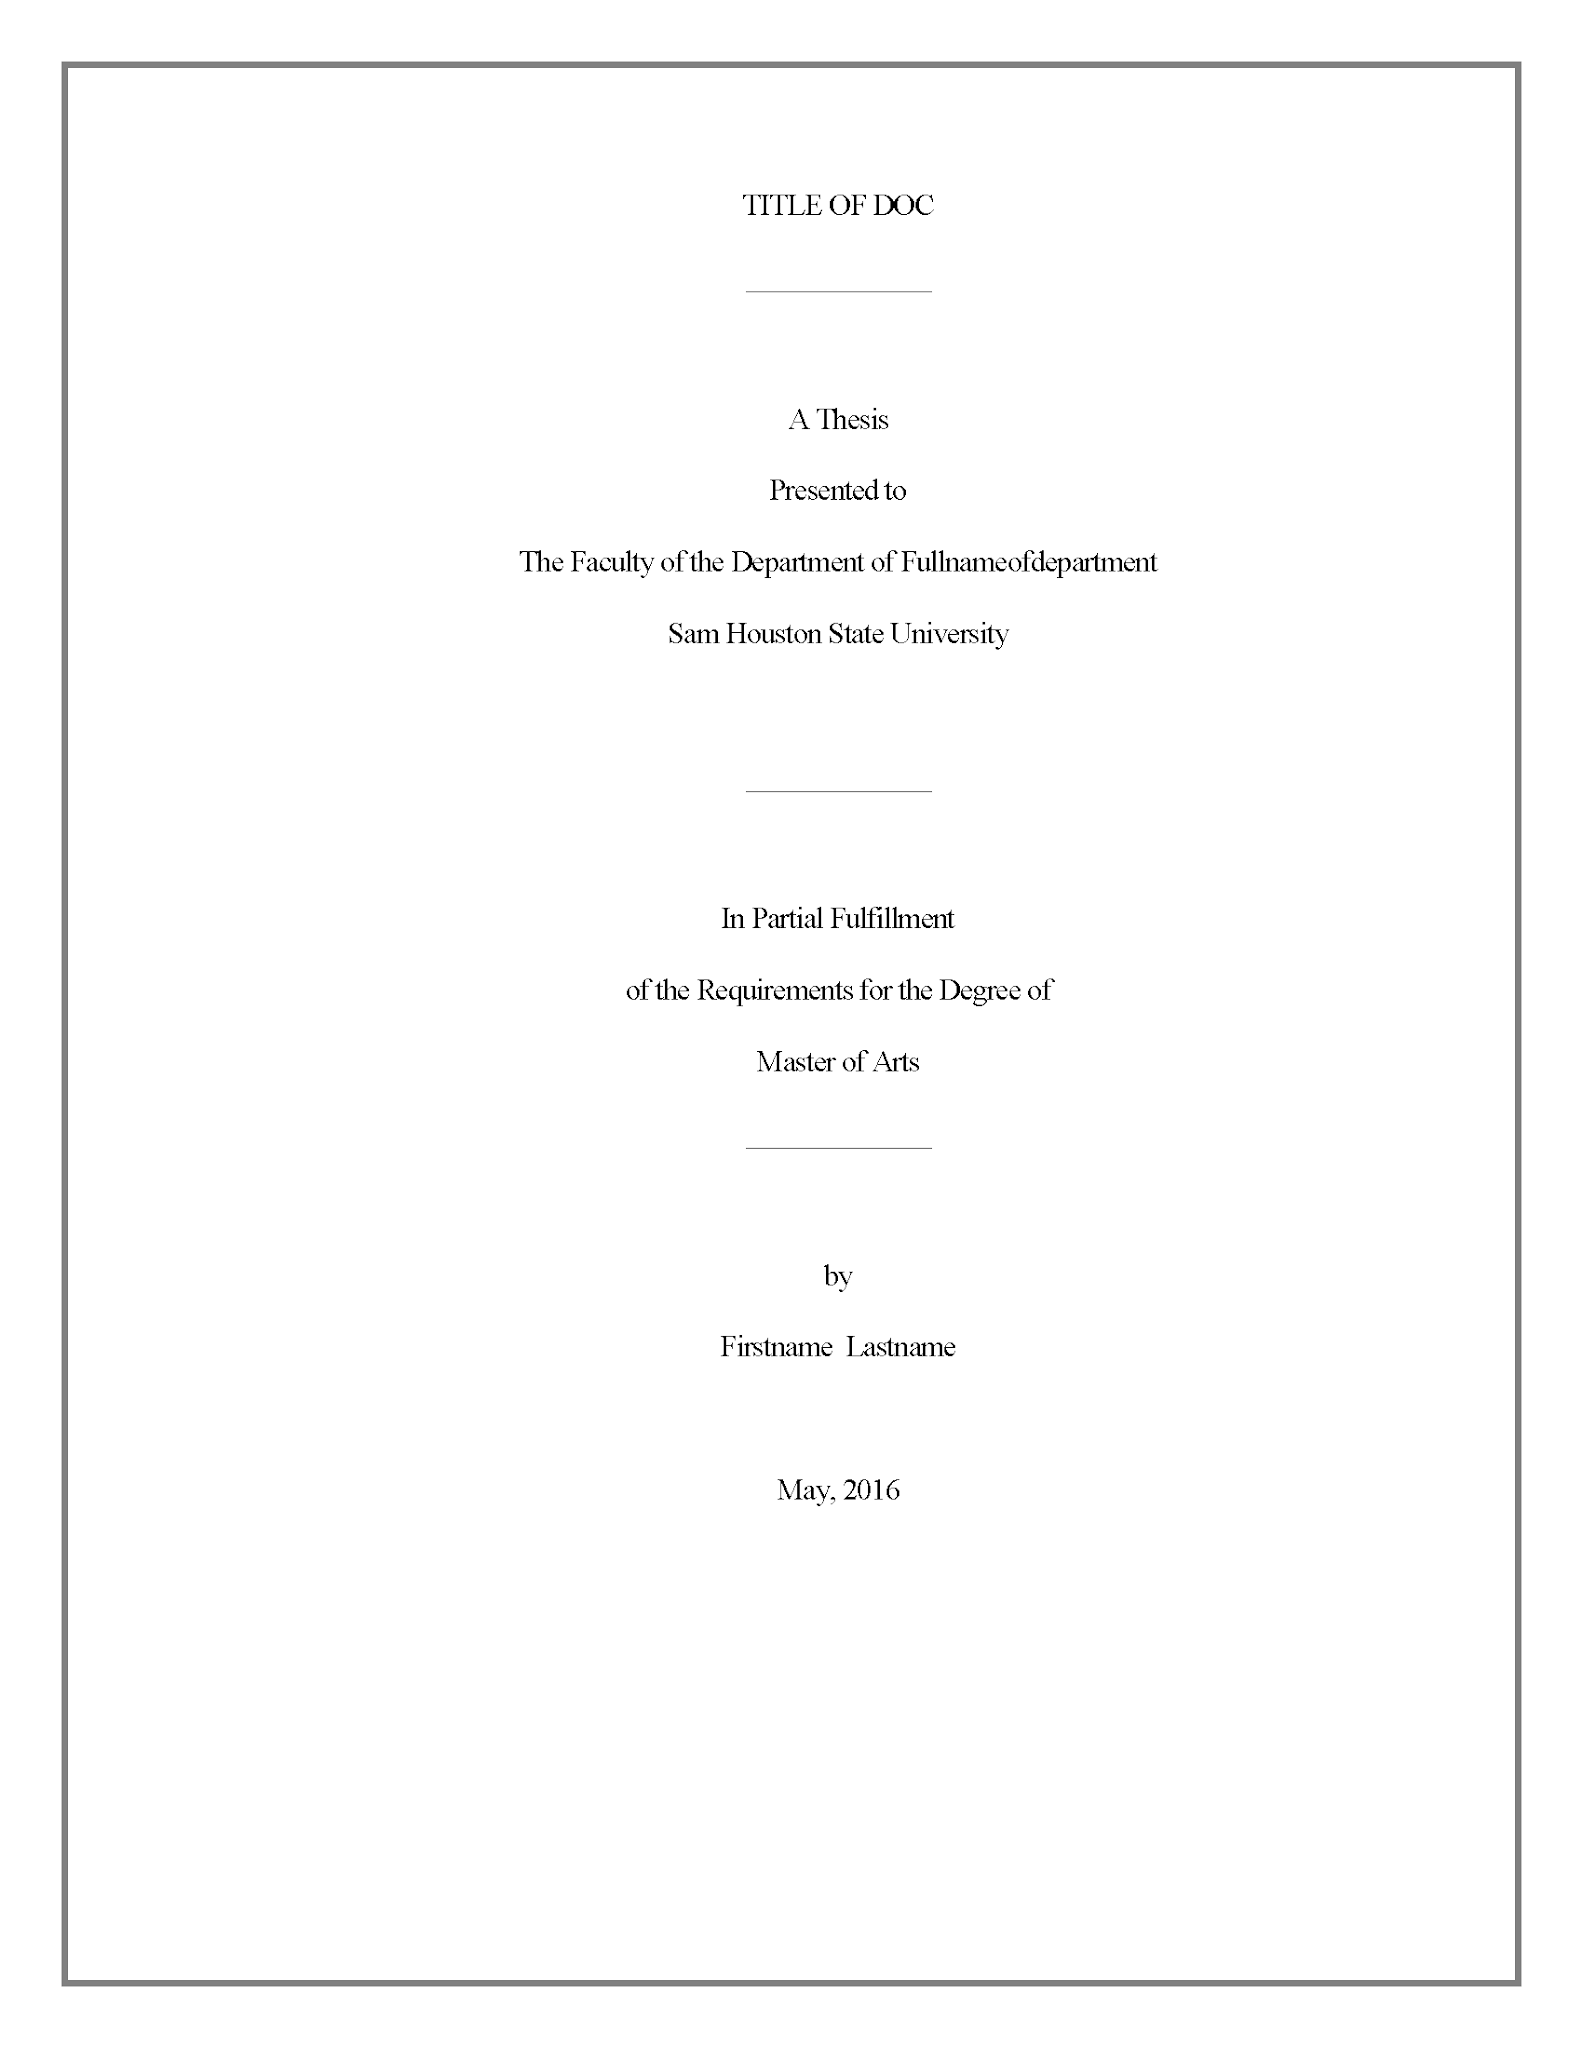 Title Page Thesi And Dissertation Research Guide At Sam Houston State University Paper Format